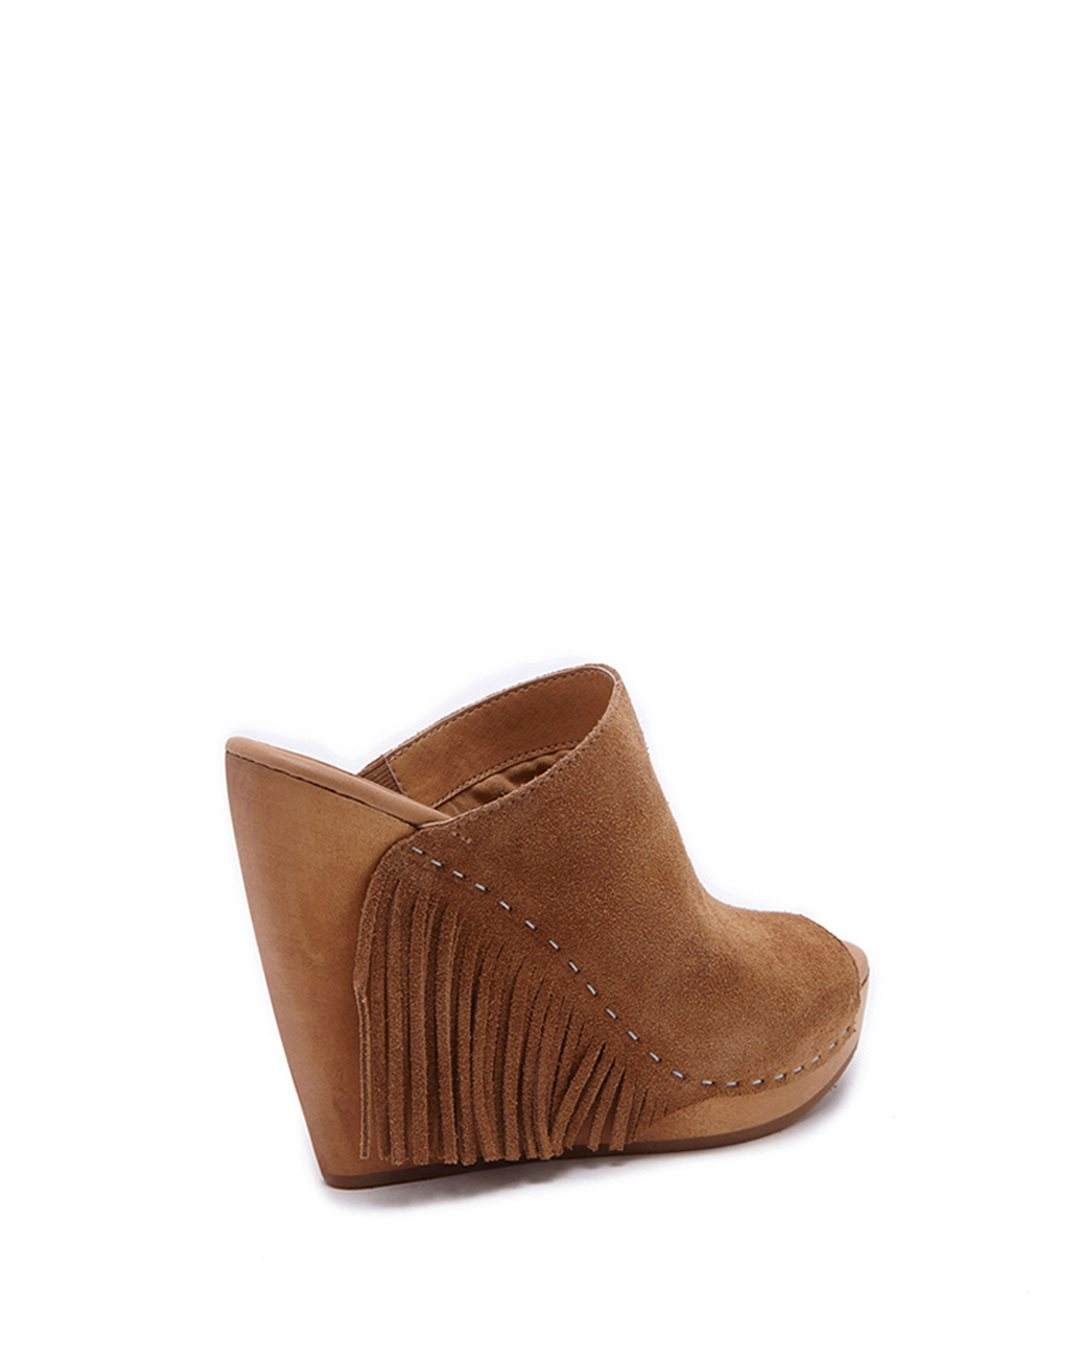 dolce vita cai wedges in brown camel lyst